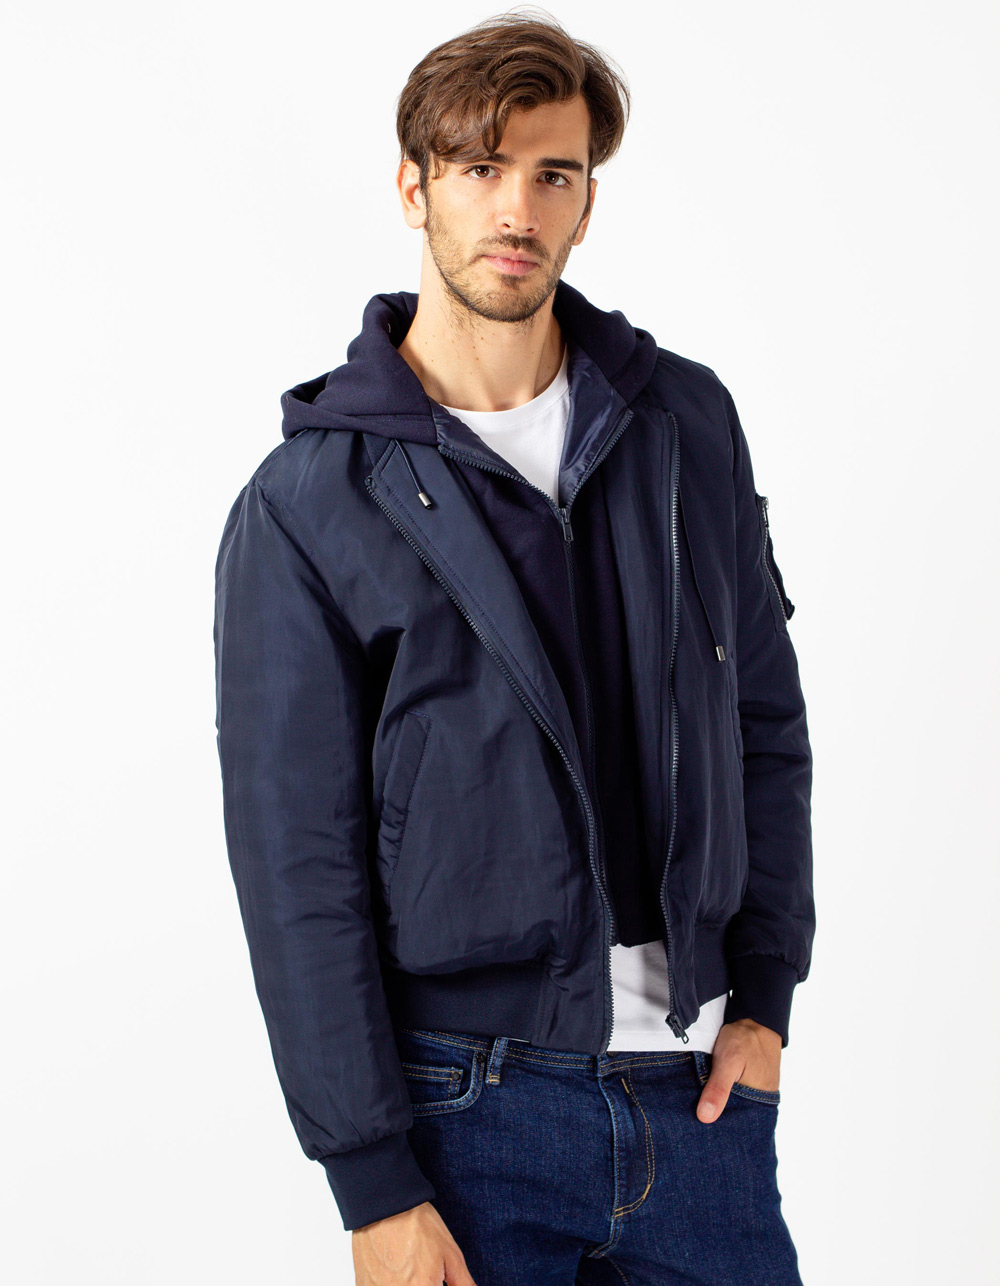 Dark Navy sport jacket